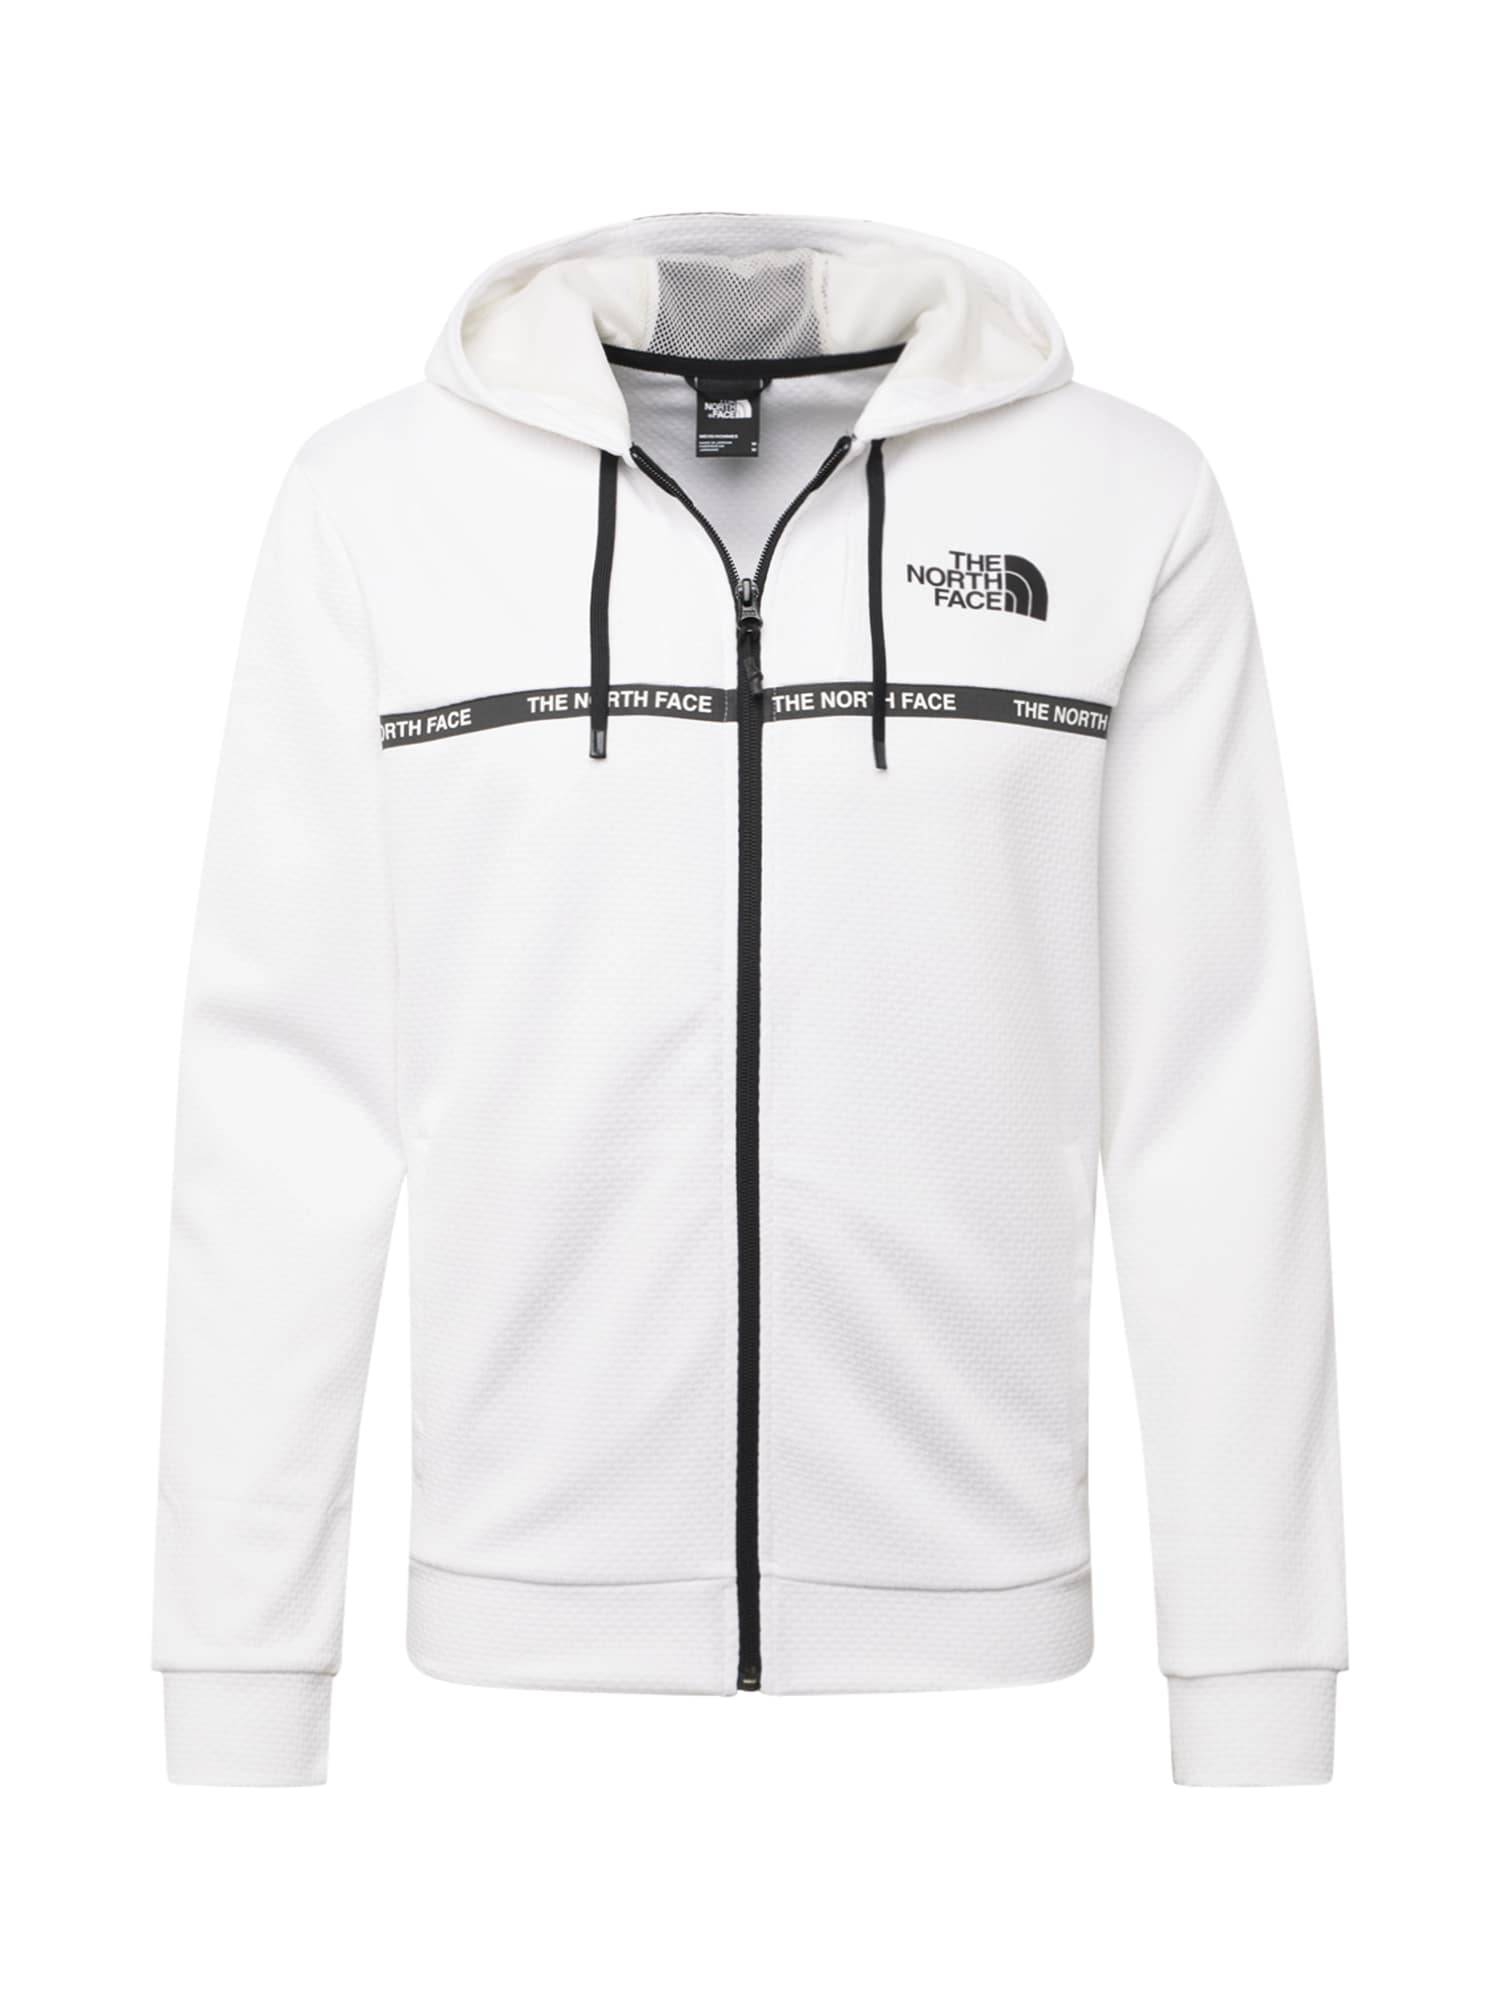 THE NORTH FACE Veste fonctionnelle 'Train'  - Blanc - Taille: L - male